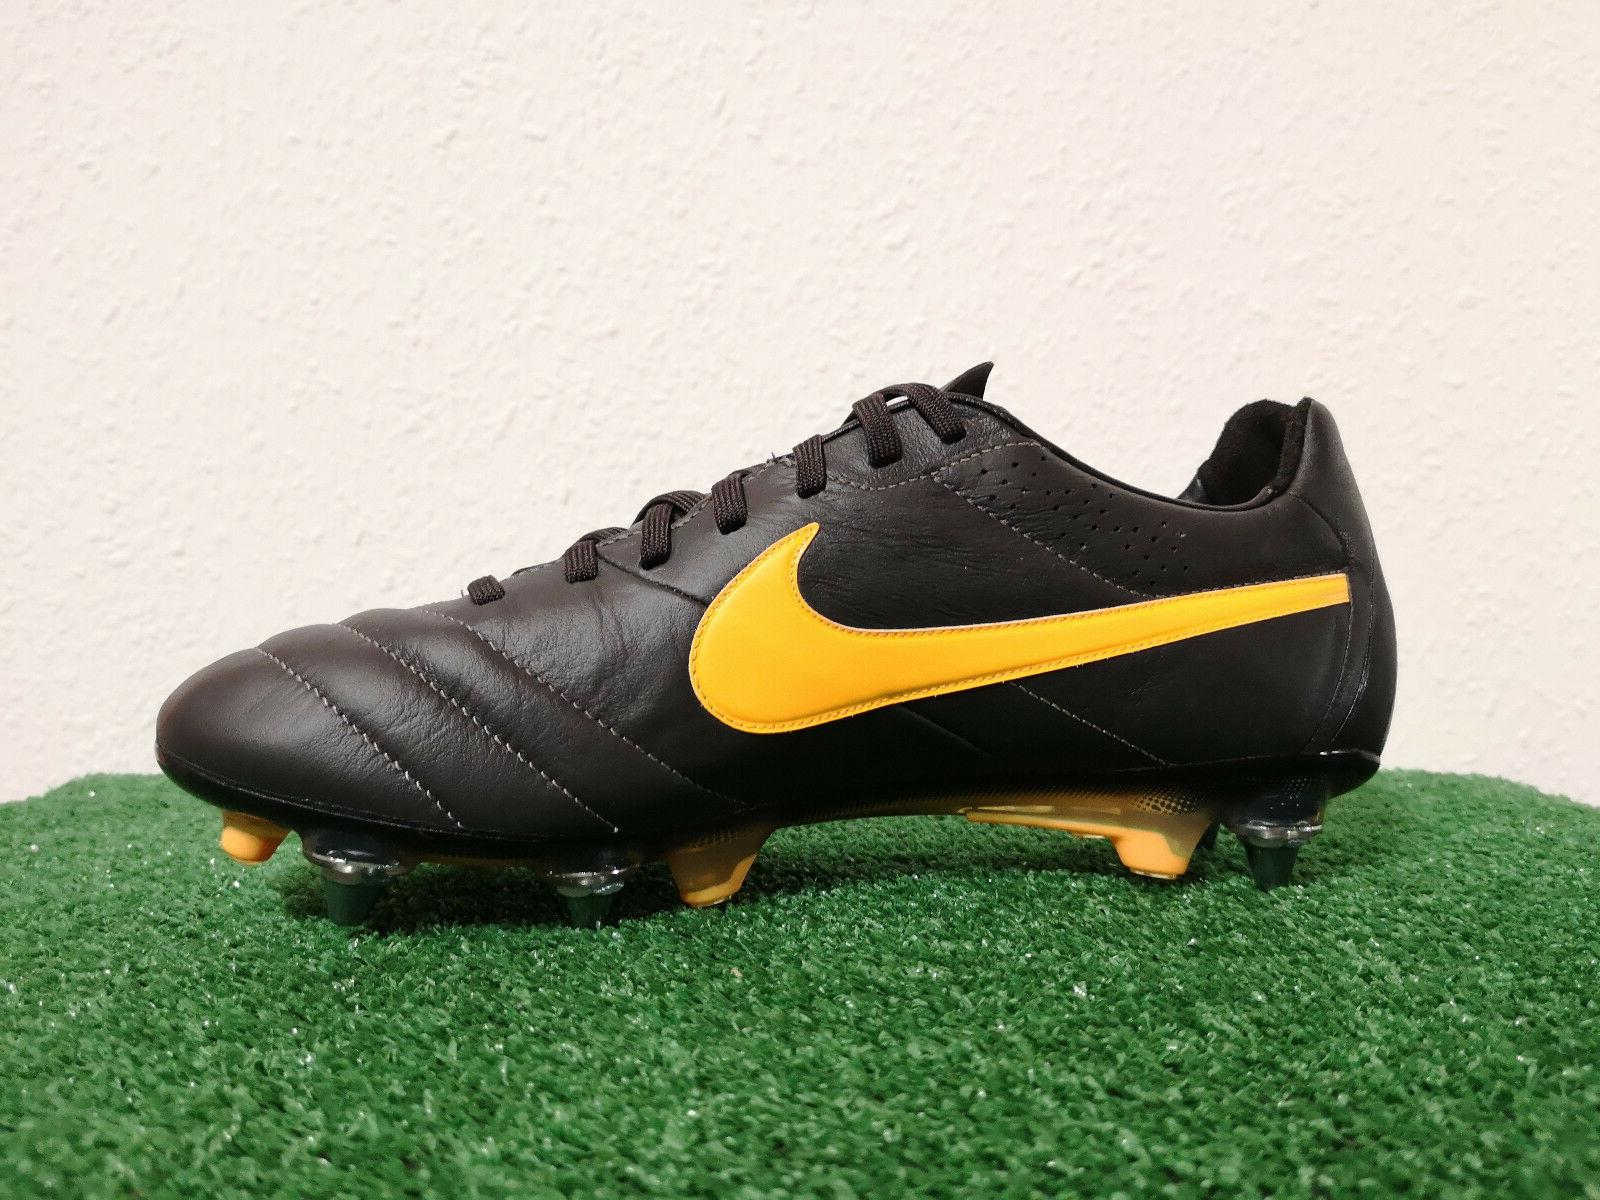 nike tiempo iv acc 7,5 8,5 boots soccer cleats